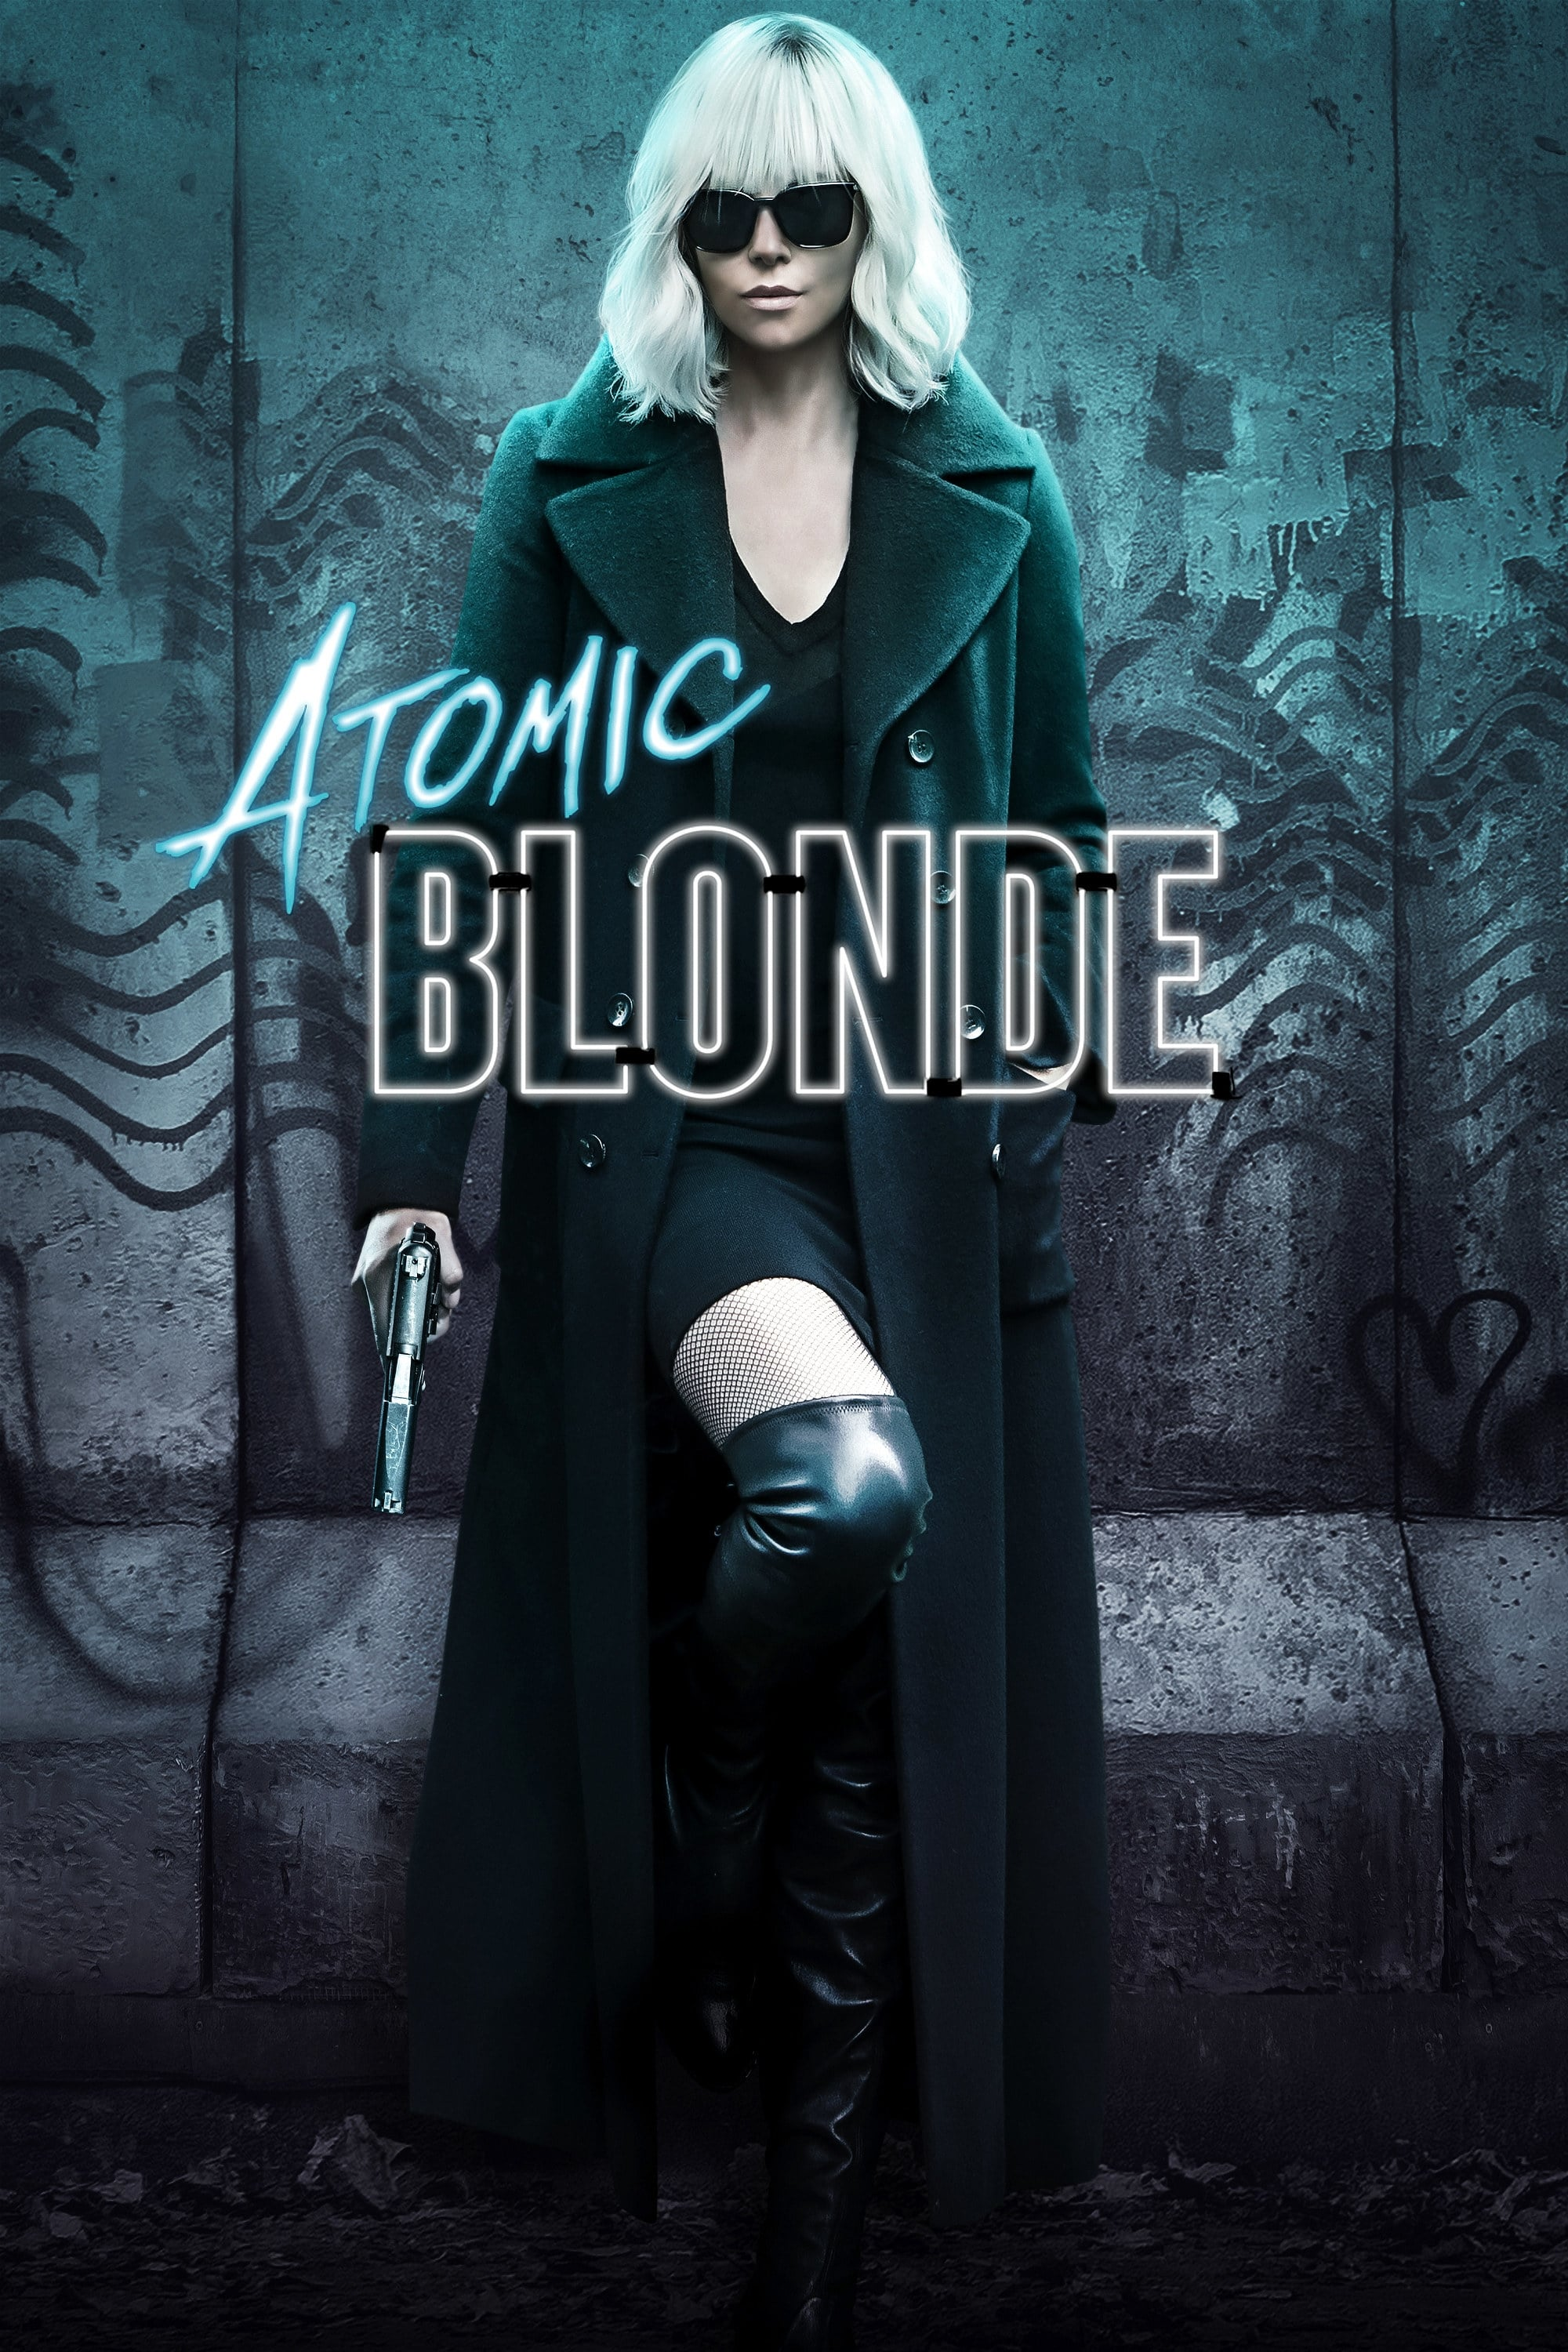 image for Atomic Blonde